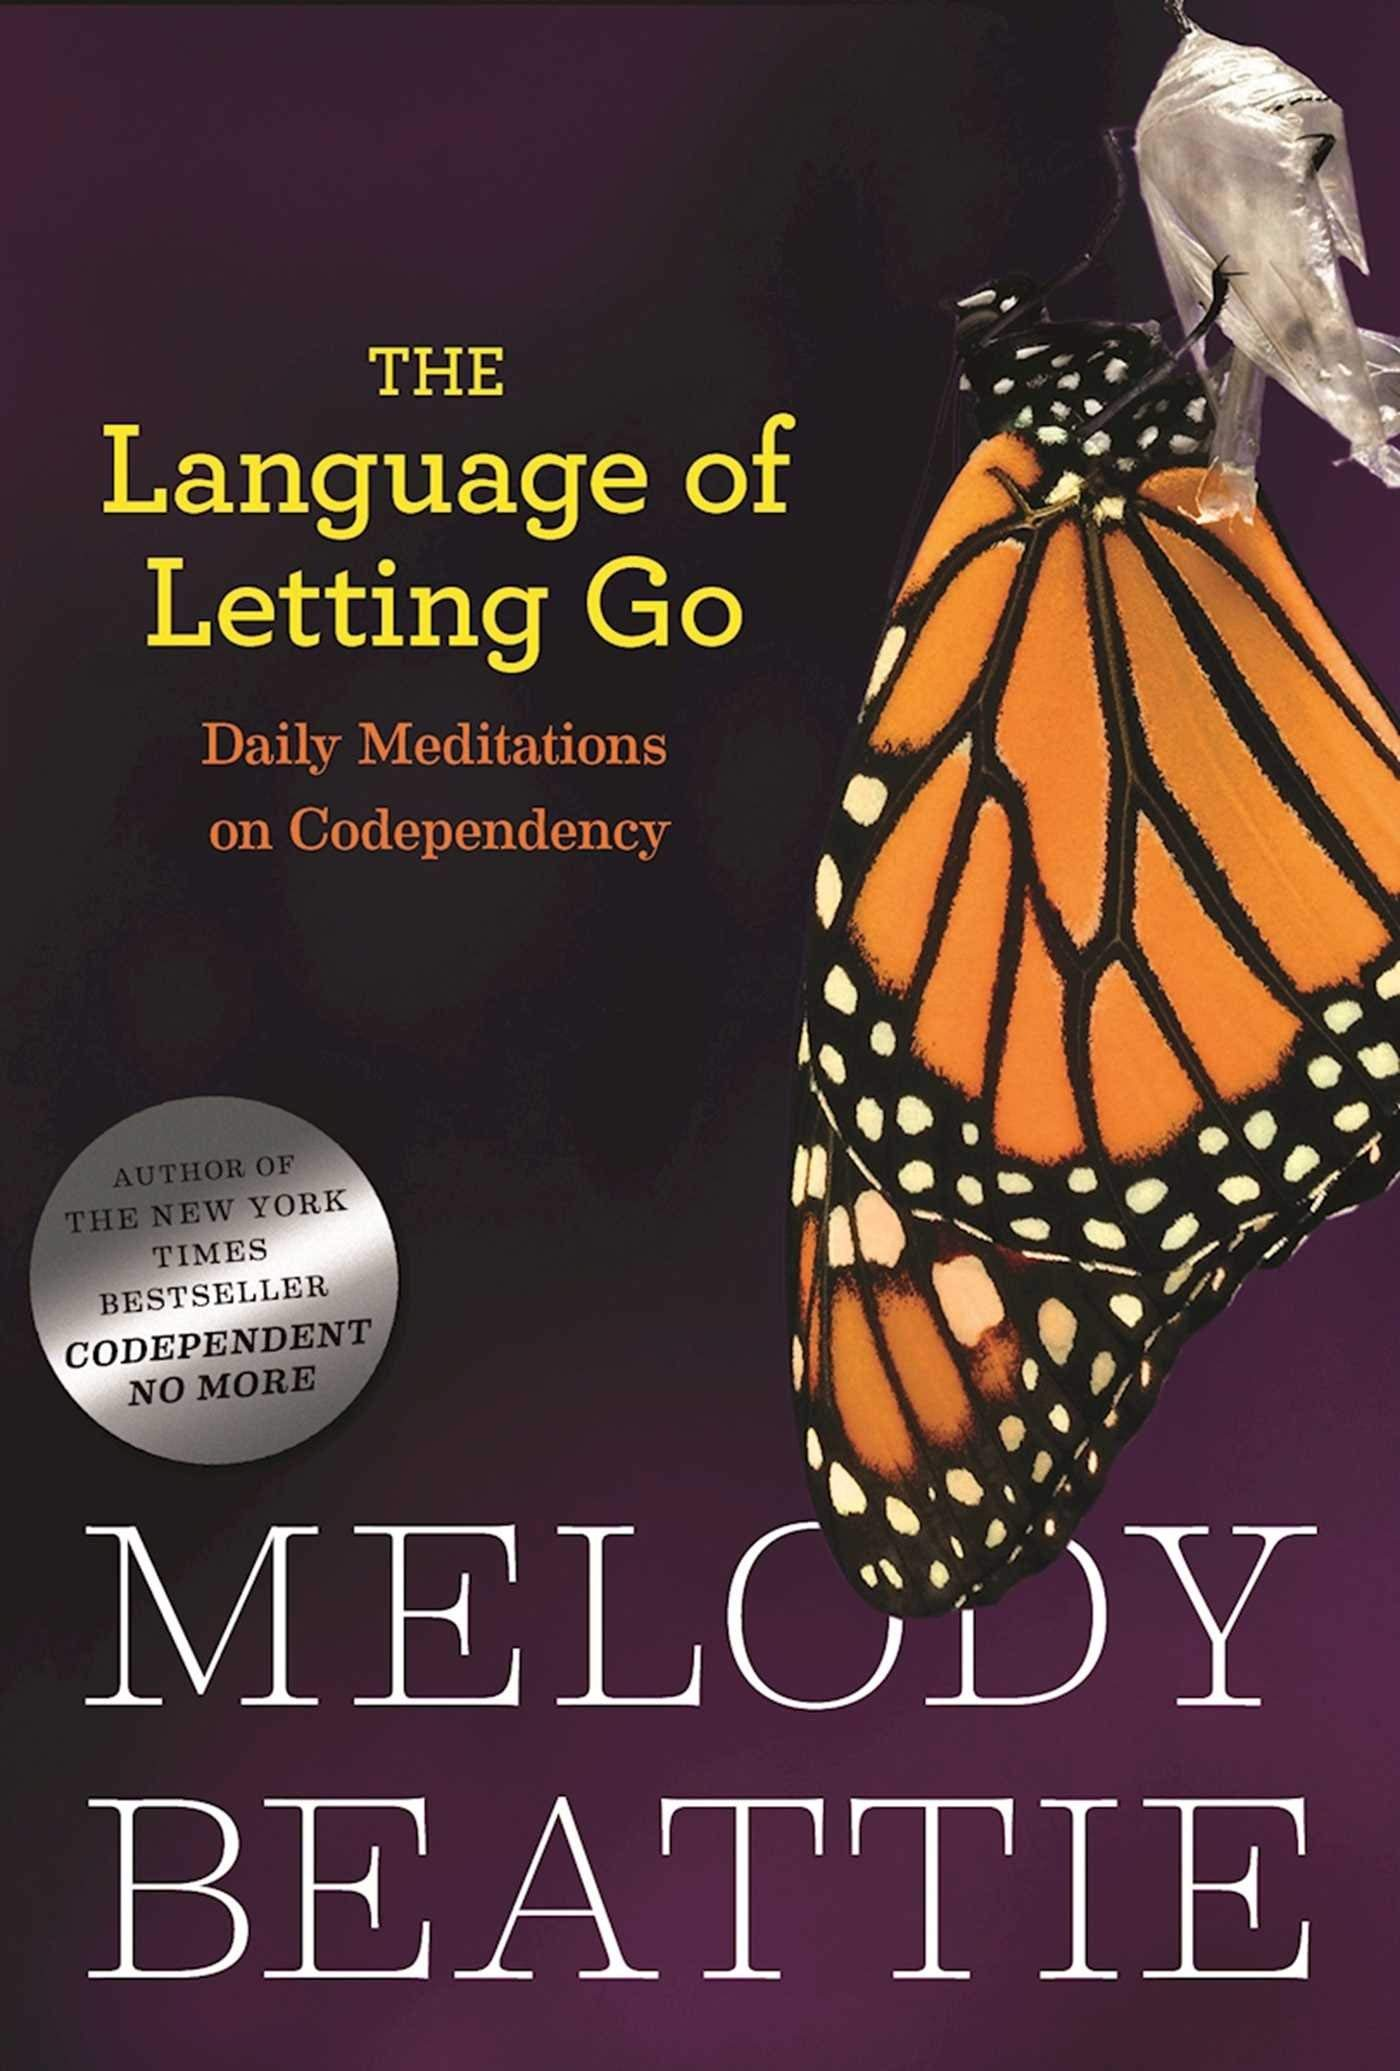 The Language of Letting Go: Daily Meditations for